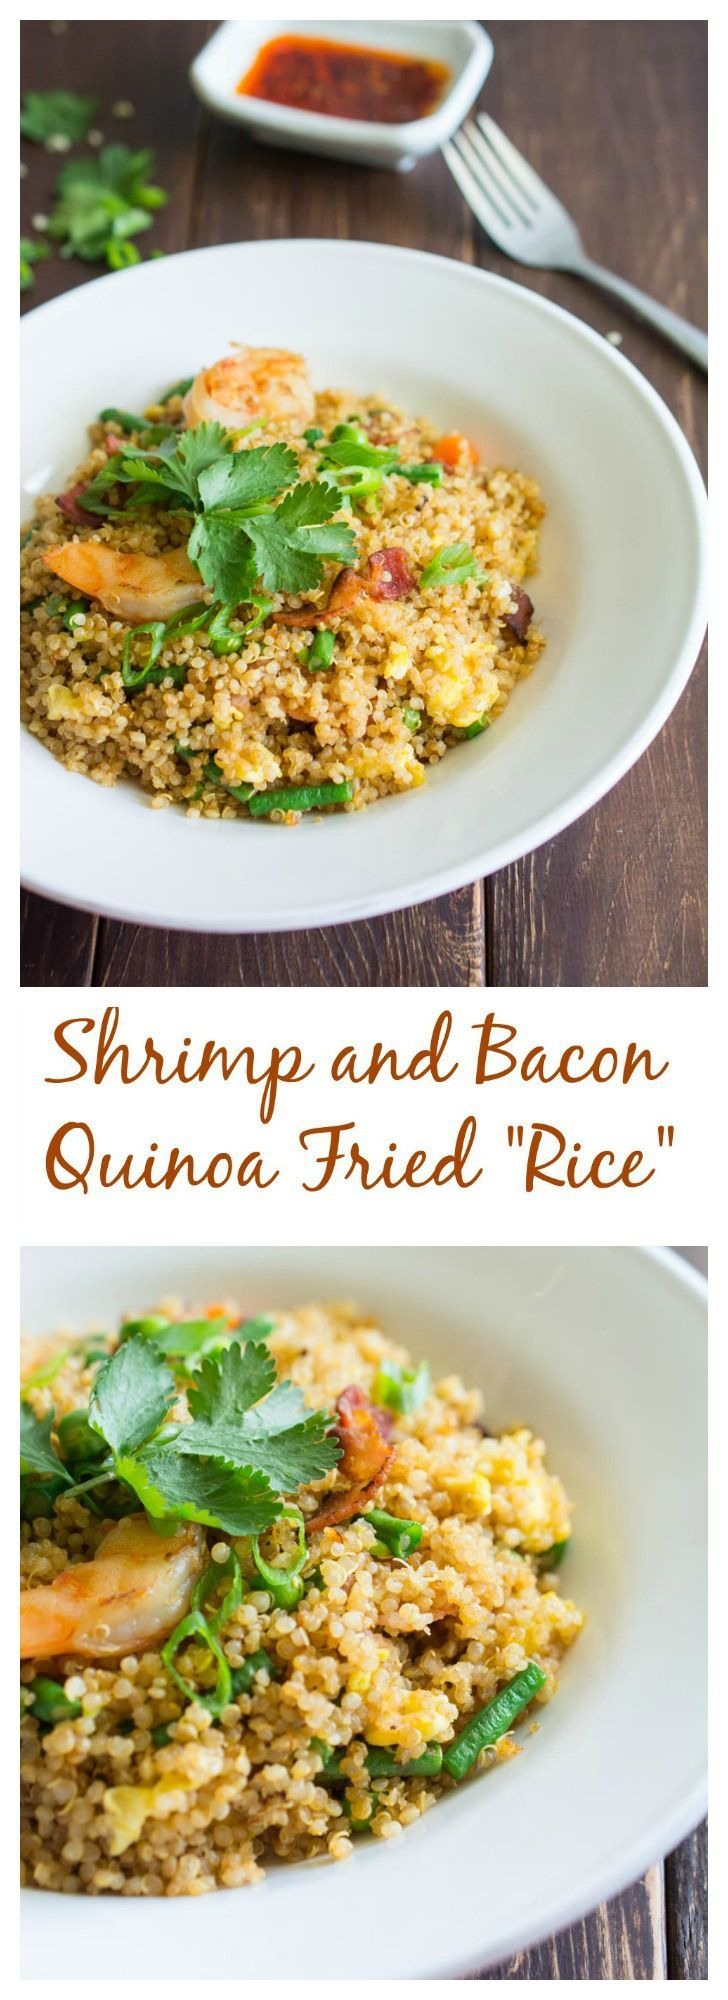 "This Bacon and Shrimp Quinoa Fried ""Rice"" is a healthy and delicious alternative to fried rice. Packed with protein and nutrients. Easy to prepare."